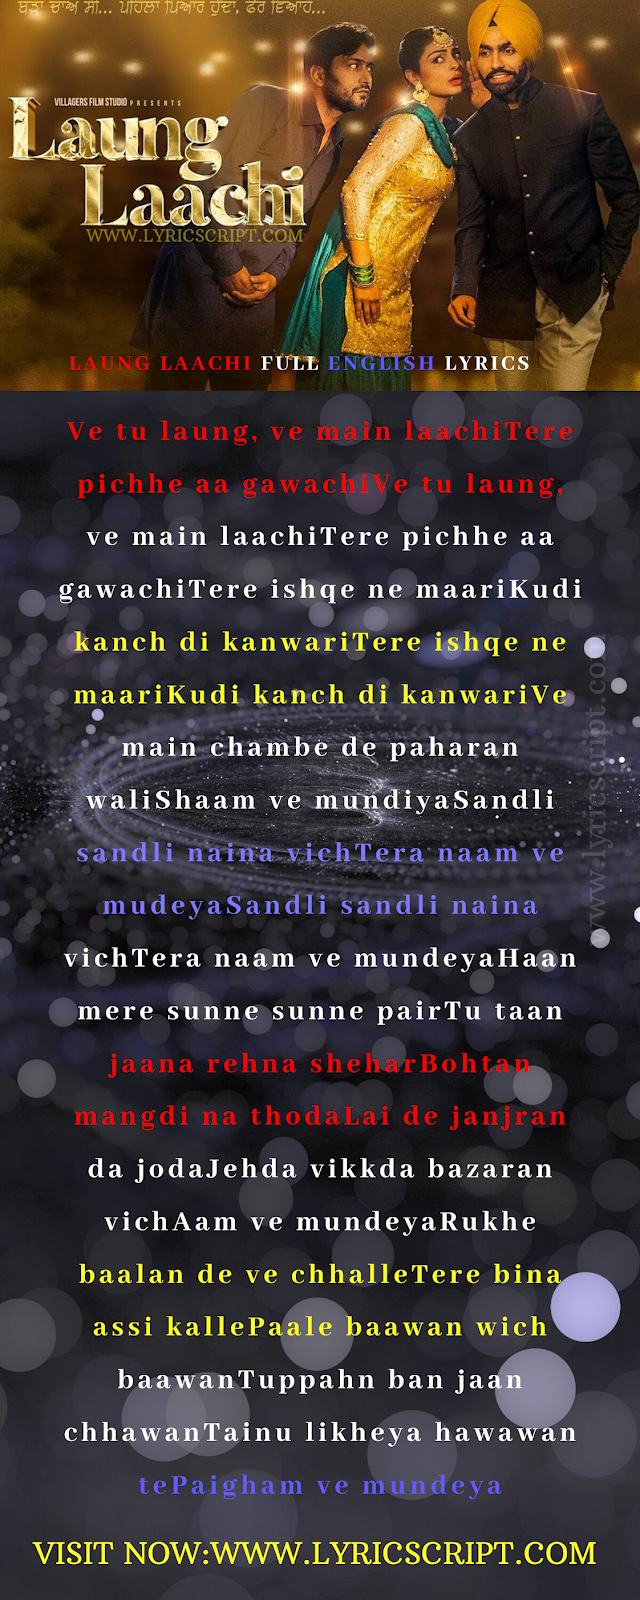 Laung Laachi Lyrics in English with meaning